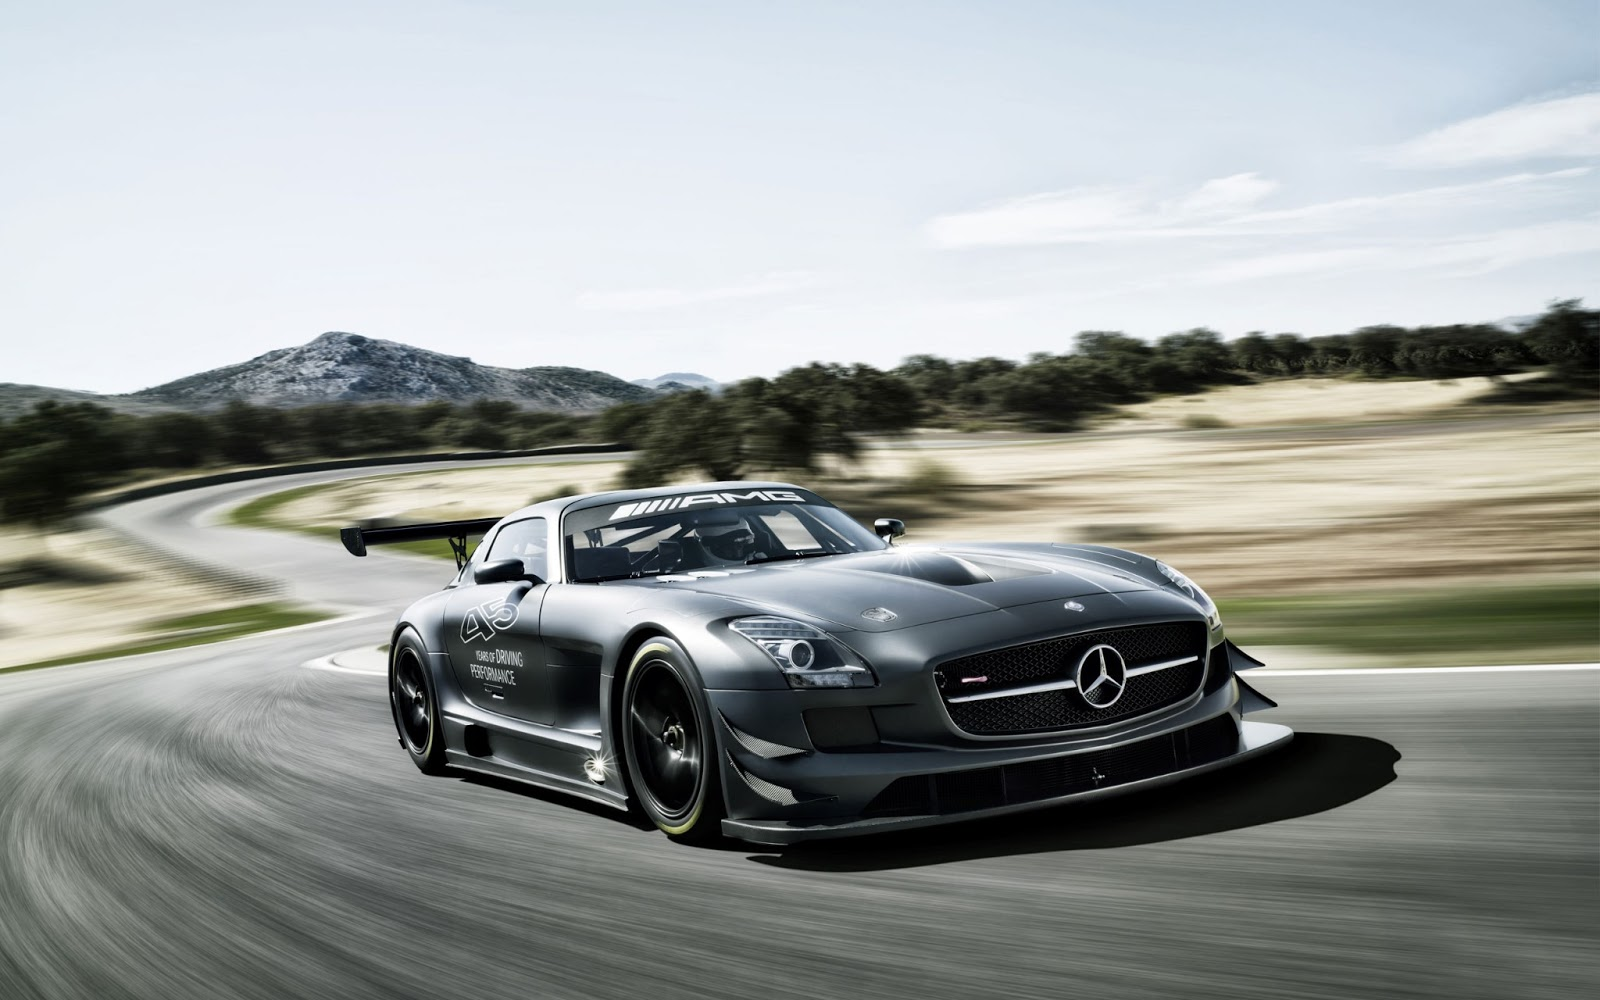 Collection of Mercedes Wallpaper on HDWallpapers